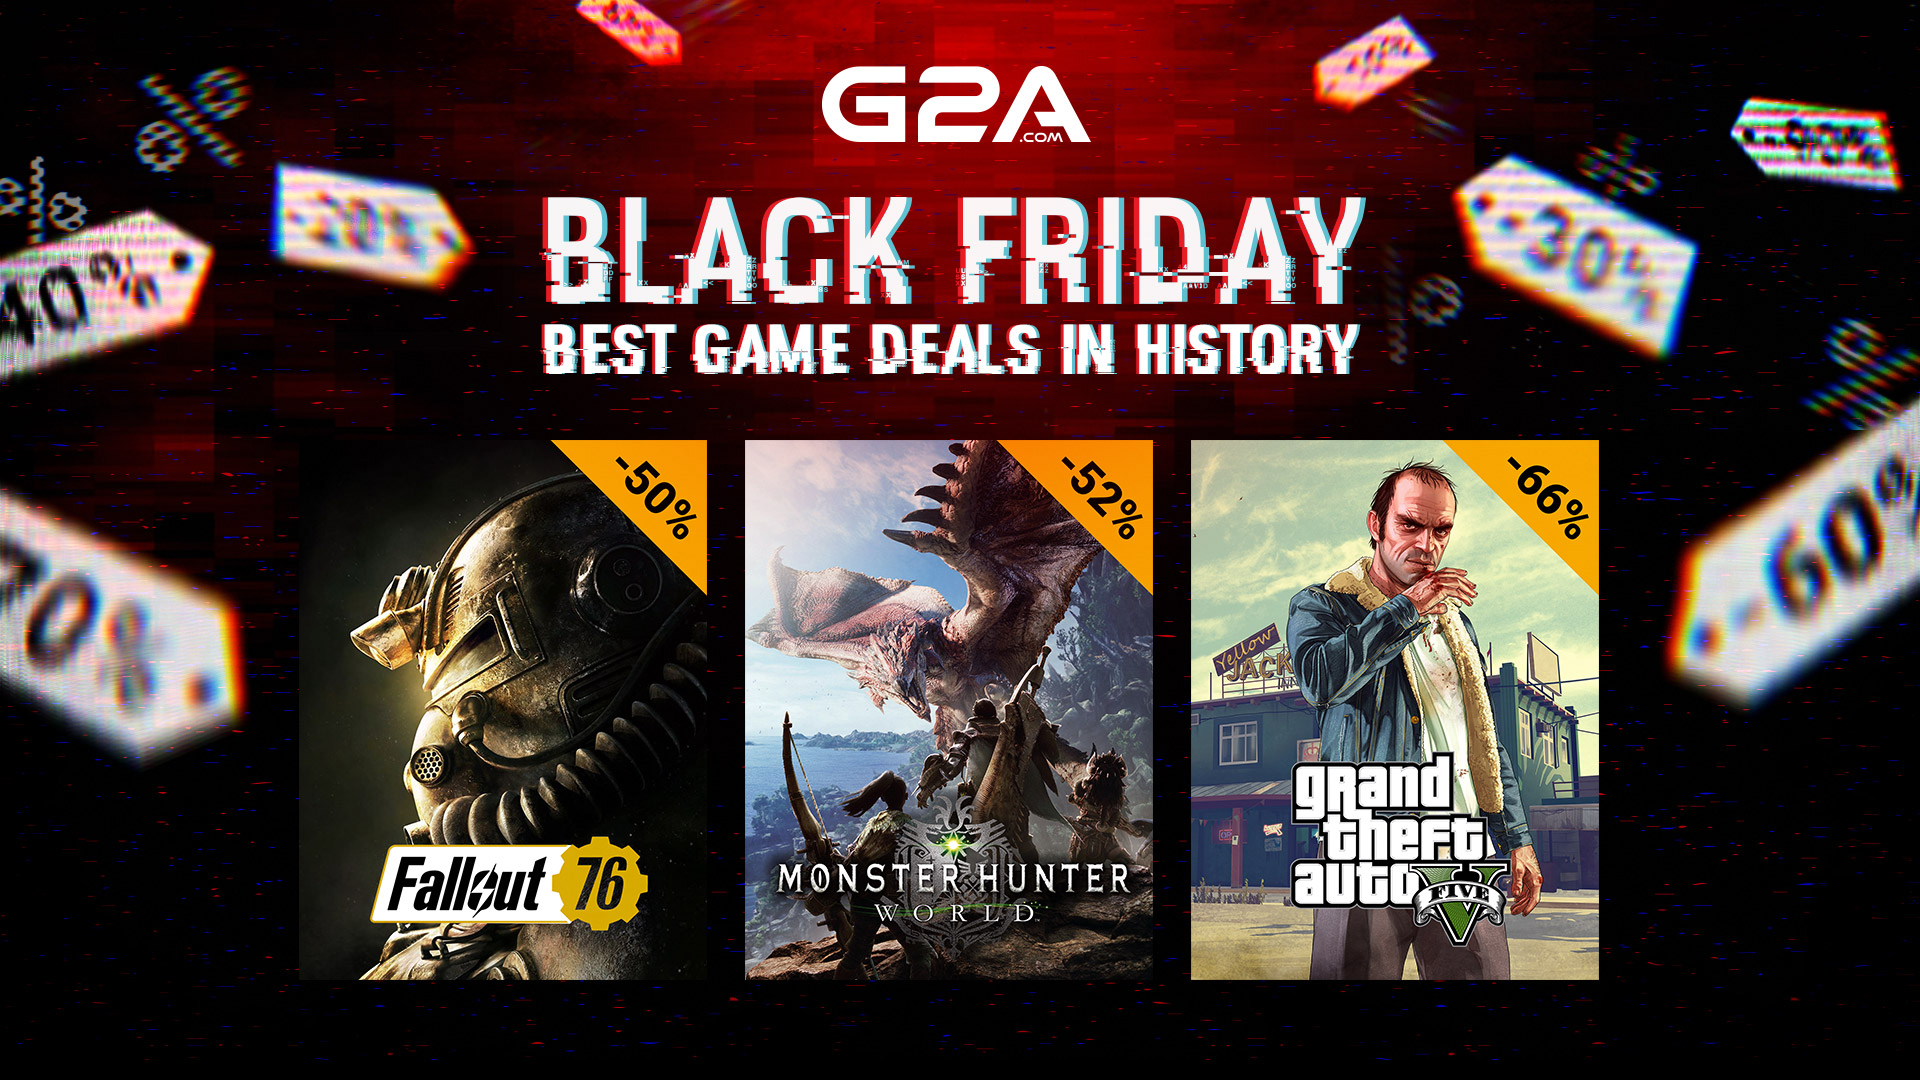 The best game deals in history – Black Friday on G2A.COM